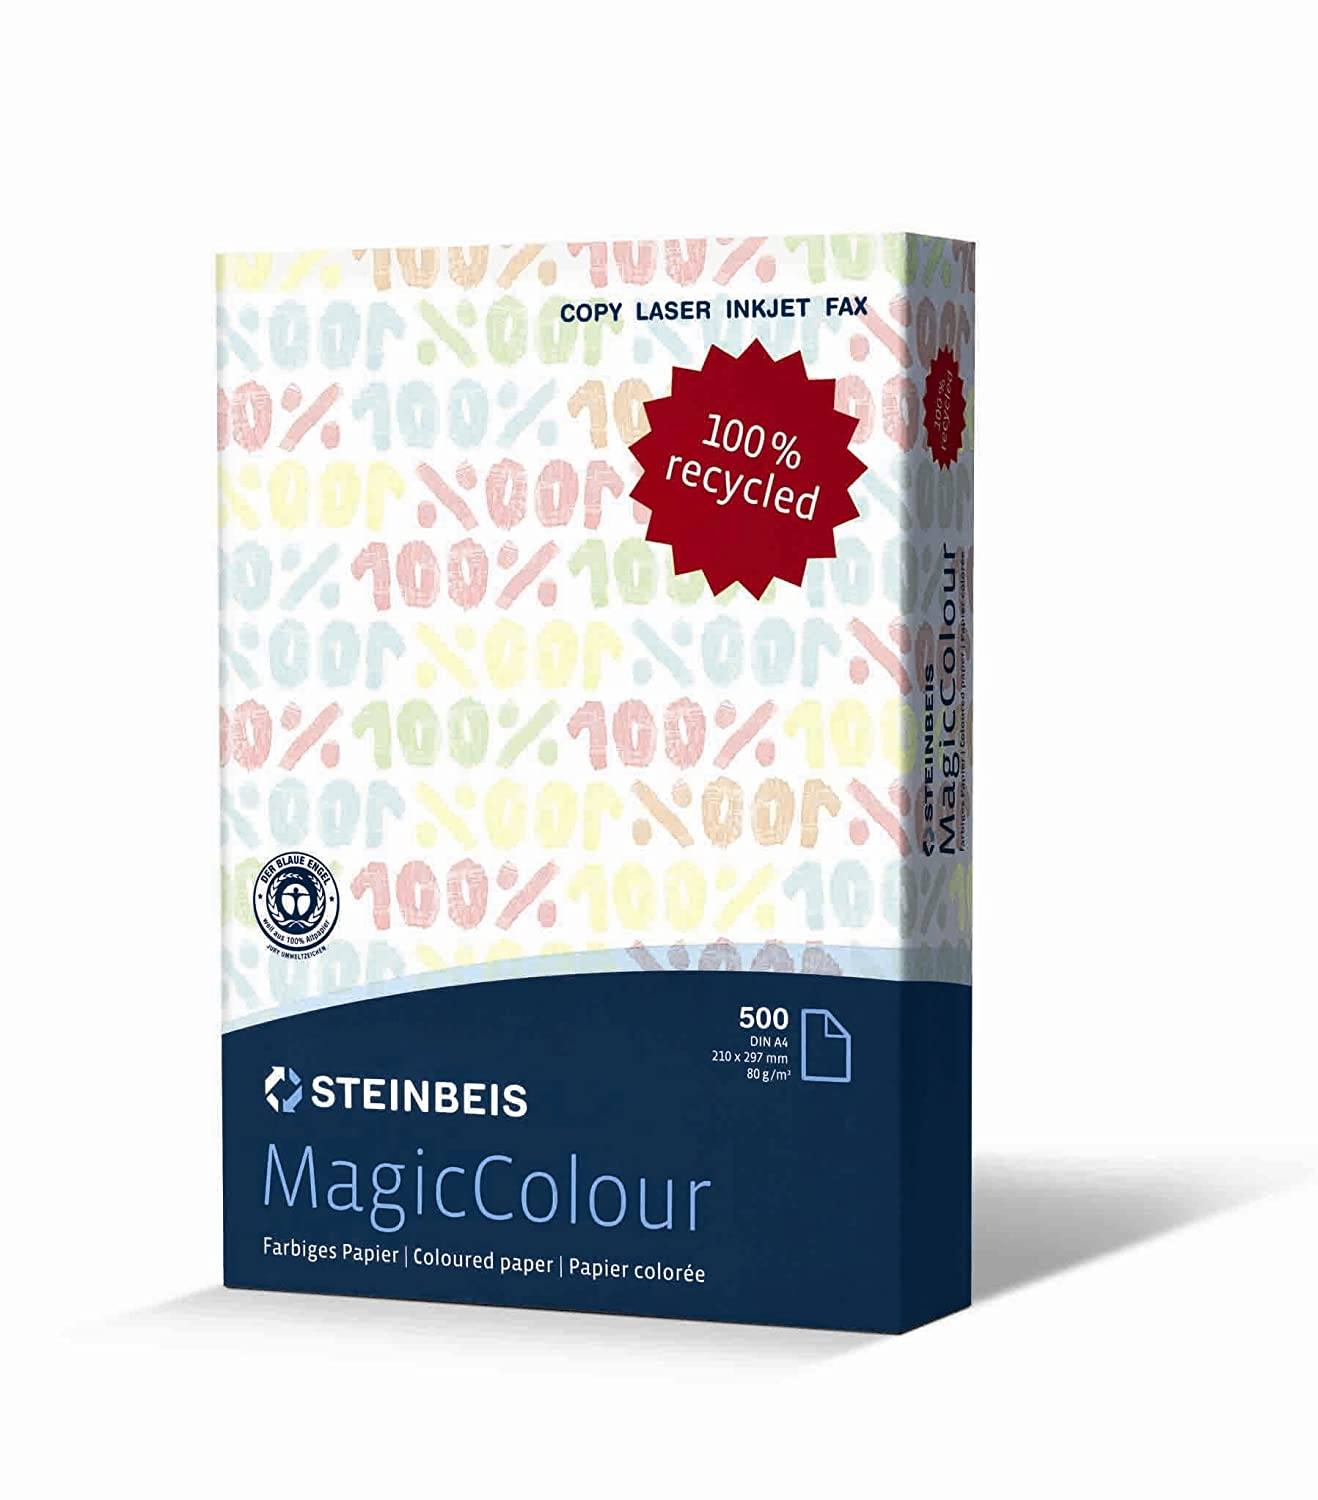 STEINBEIS A4 PRINTING PAPER 100/% RECYCLED CLASSIC WHITE 80gsm 5 REAM 2500 SHEETS